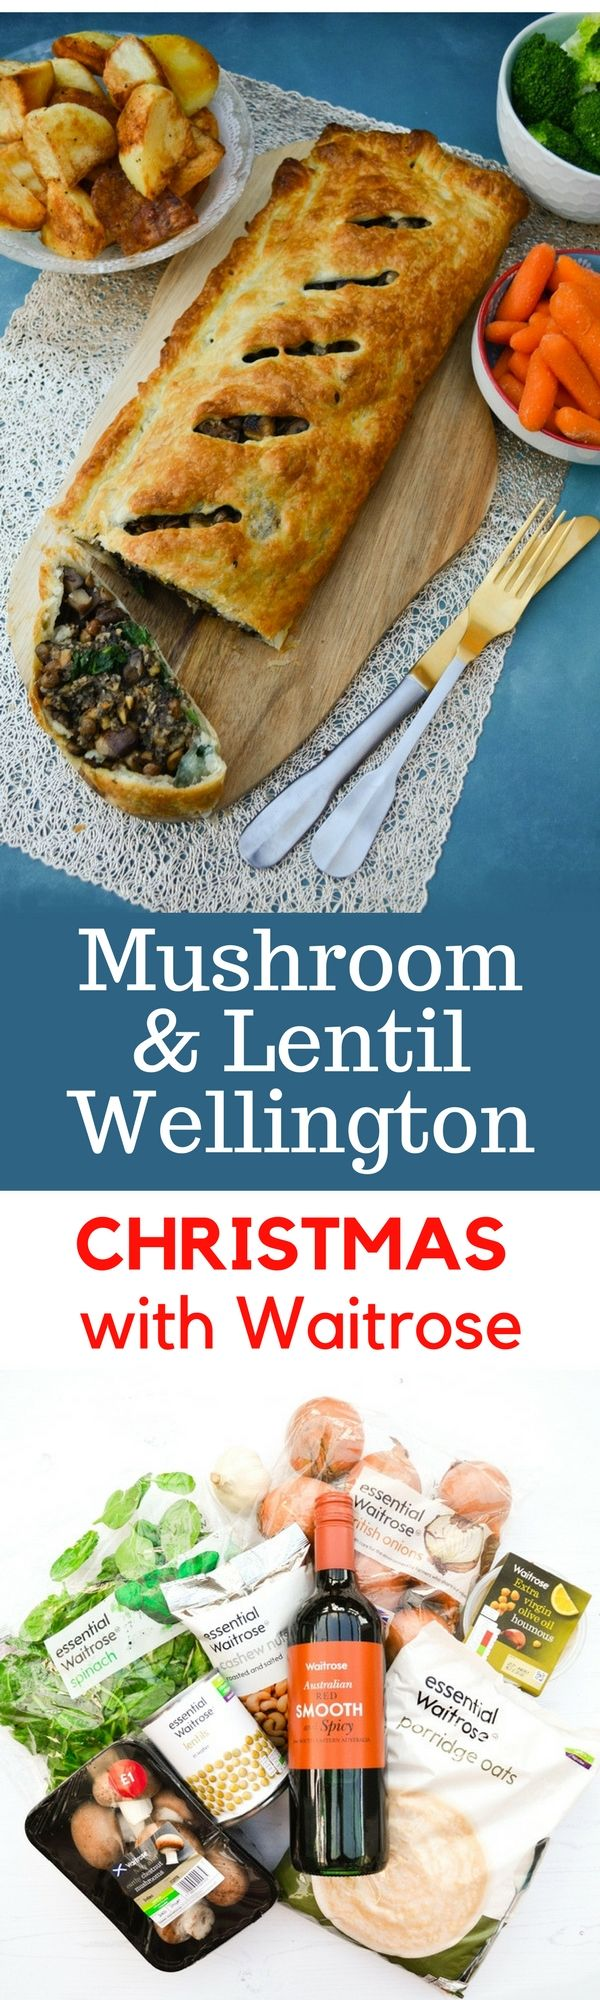 This puff pastry pie is a twist on the traditional beef wellington and it is the perfect vegetarian or vegan Christmas main course.This golden puff pastry pie is layered with hummus, spinach, mushroom and cashew nut pate and a mixture of succulent thyme flavoured mushrooms and lentils. Serve it up with roast potatoes, a selection of vegetables and a rich onion gravy. #christmastogether #vegan #veganwellington #veganchristmas #veganchristmasdinner #christmasdinner #mushroomwellington…